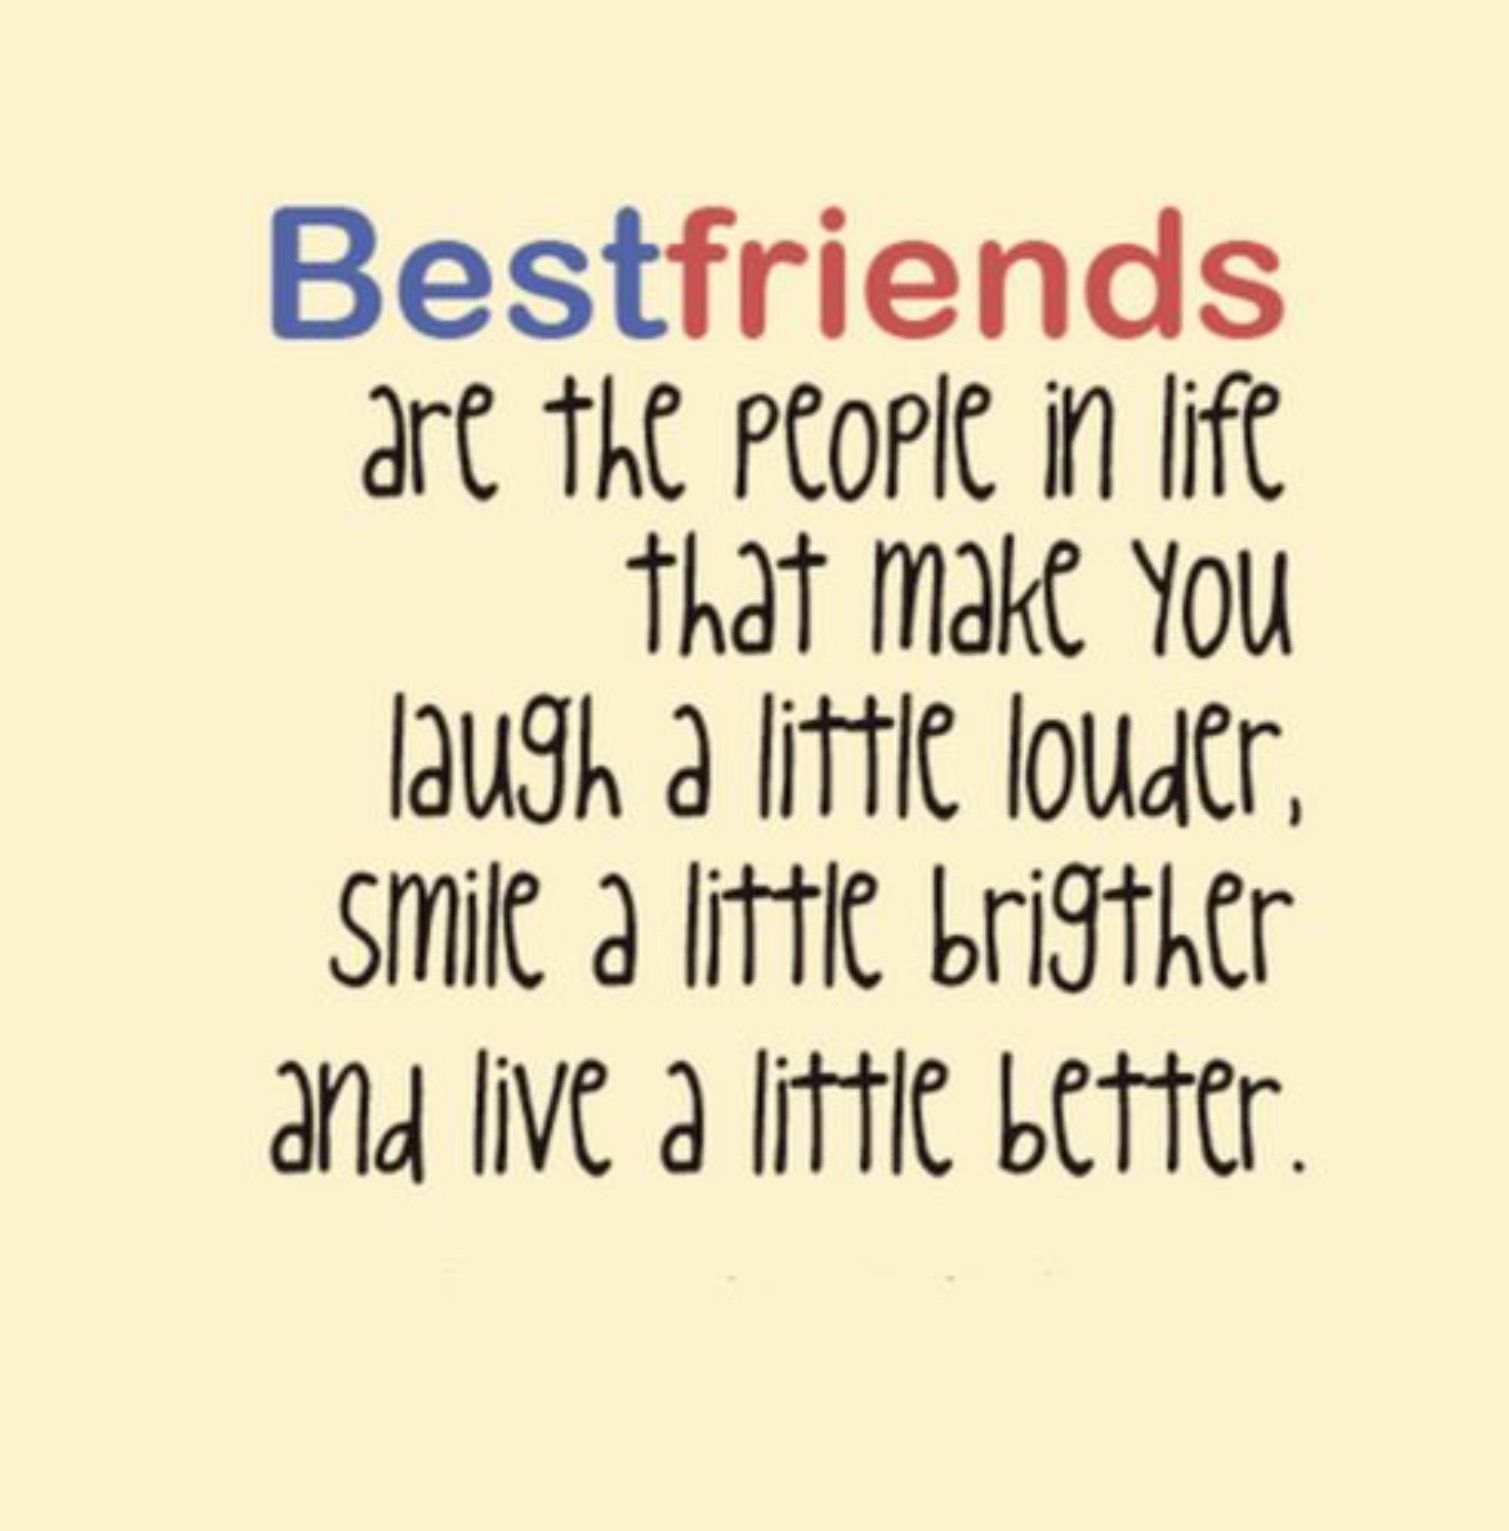 Live a lot better cute best friend quotes great quotes cute quotes funny